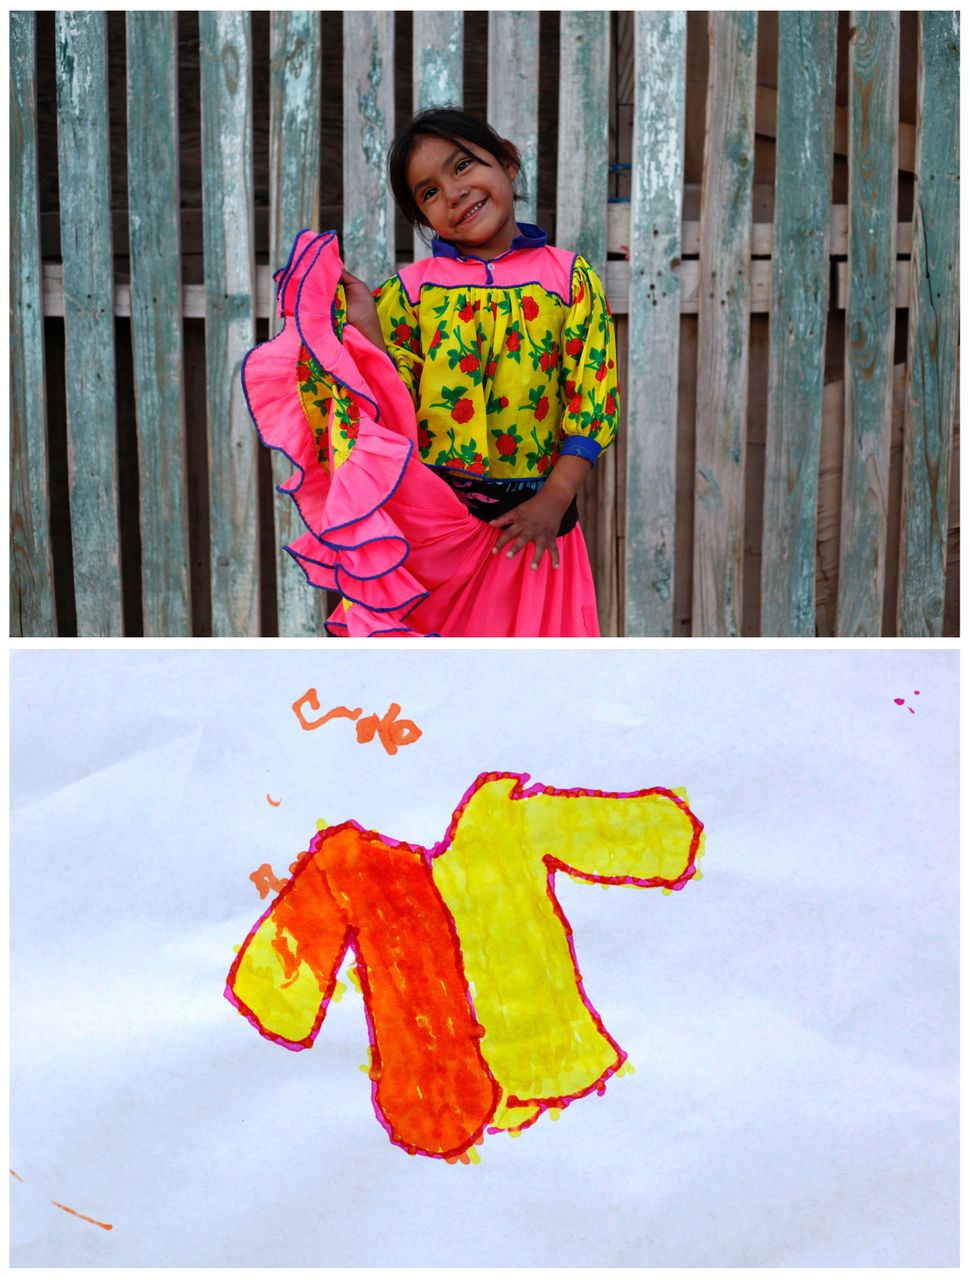 <strong>Alicia, 4, from Ciudad Juarez, Mexico:</strong> Alicia wants a winter jacket and clothes for her cousins.